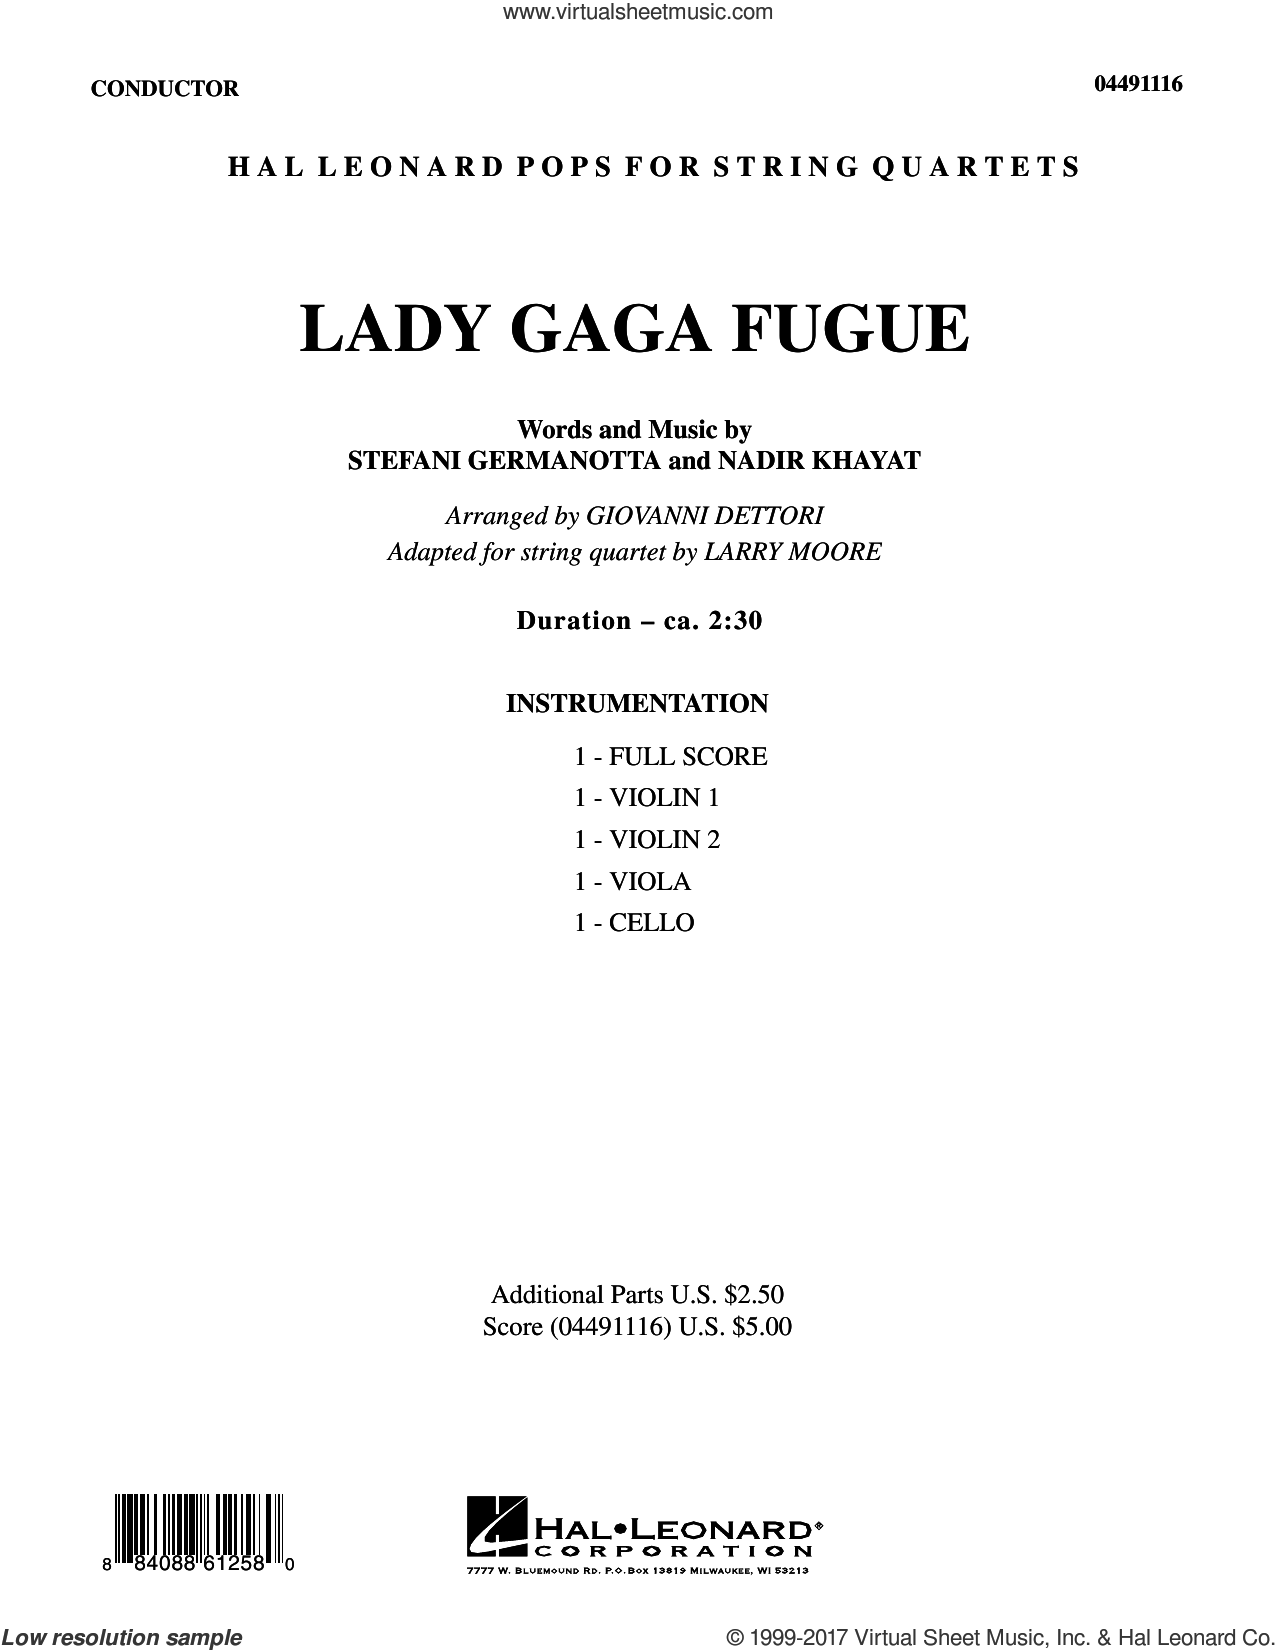 Lady Gaga Fugue (COMPLETE) sheet music for string quartet (Strings) by Lady Gaga, Larry Moore and Nadir Khayat, intermediate orchestra